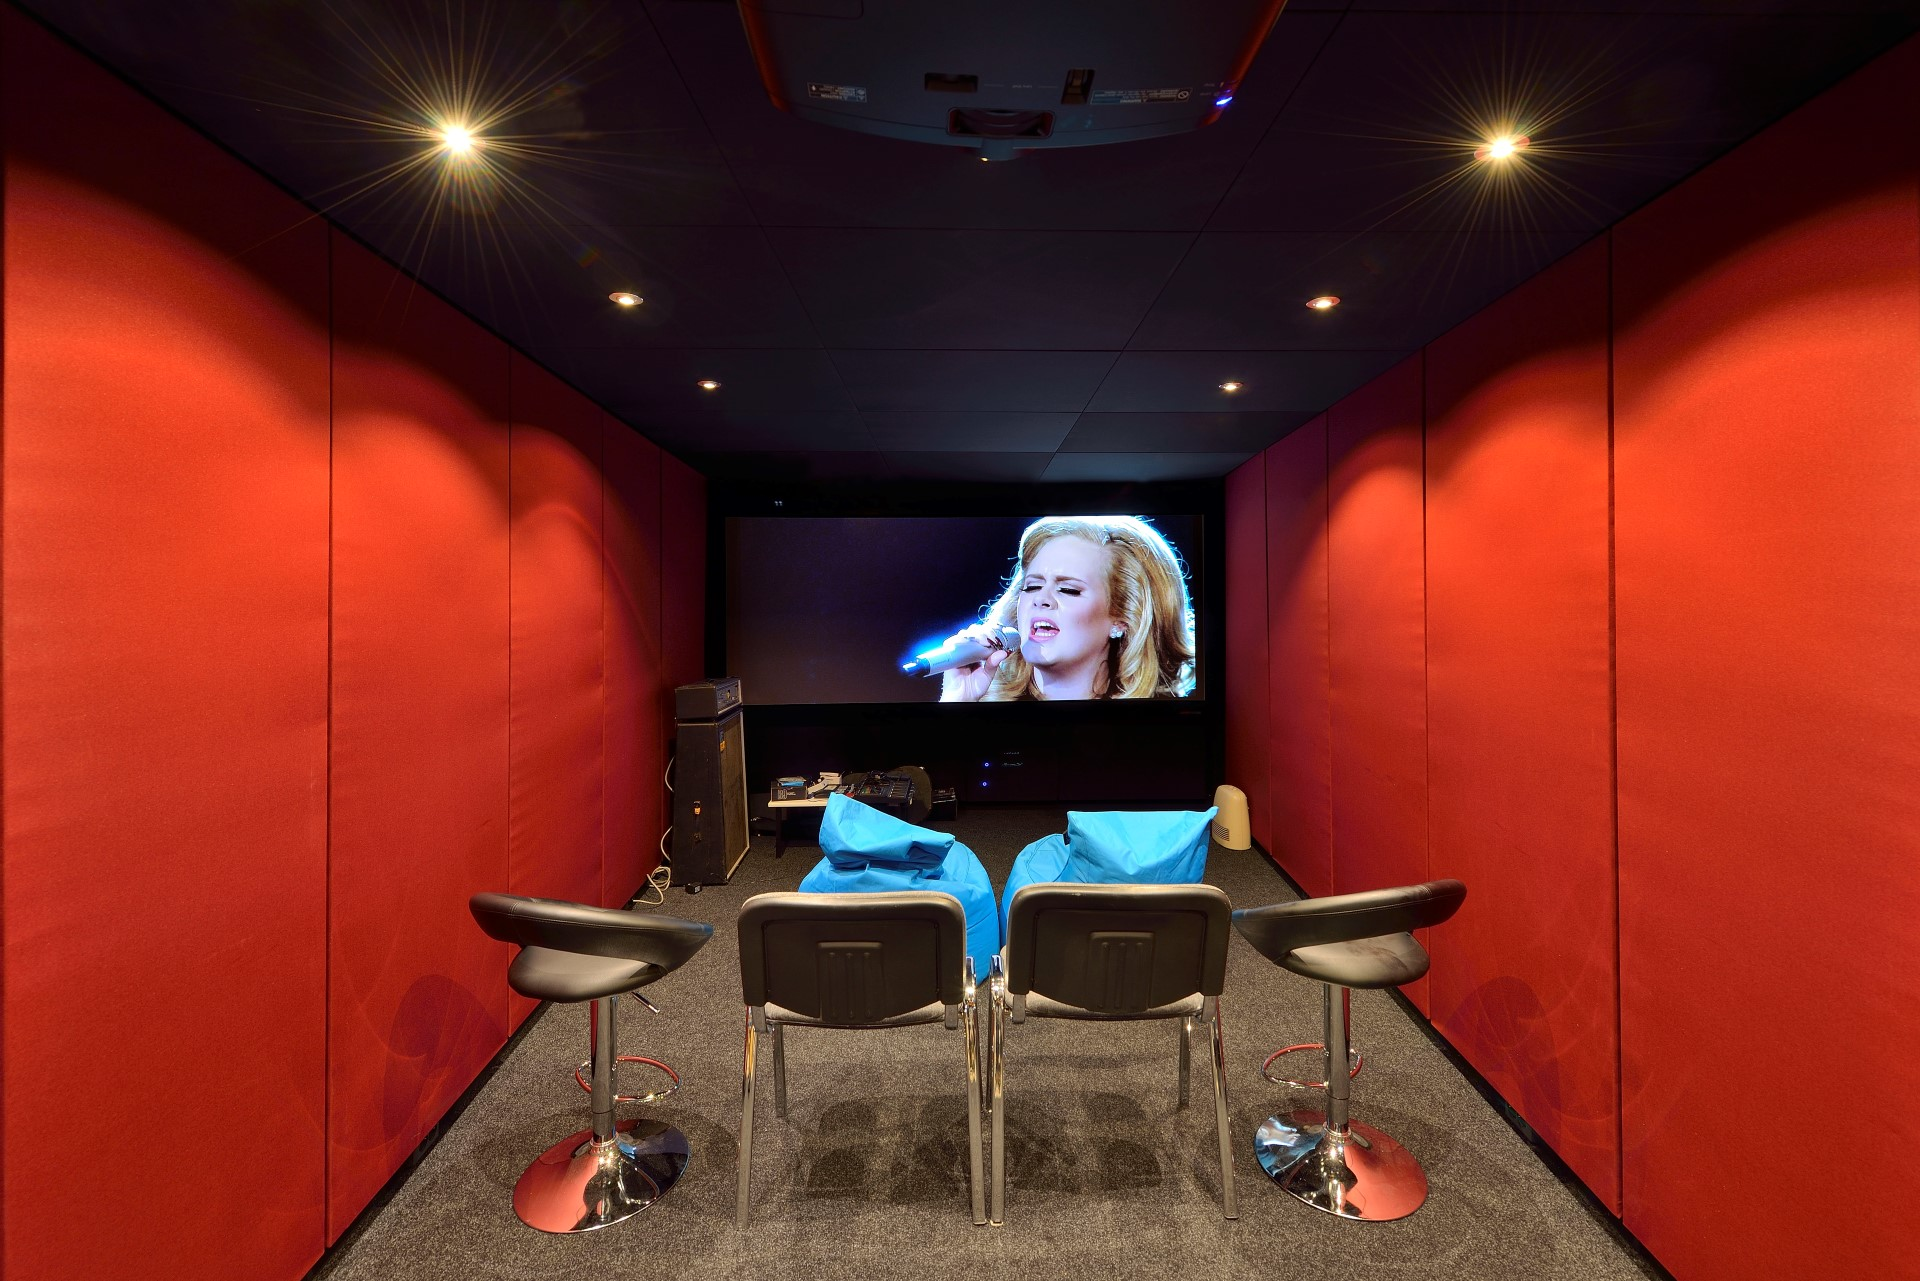 Thuisbioscoop Maken Mutrox Studios And Home Cinemas Soundproof Solutions Voor